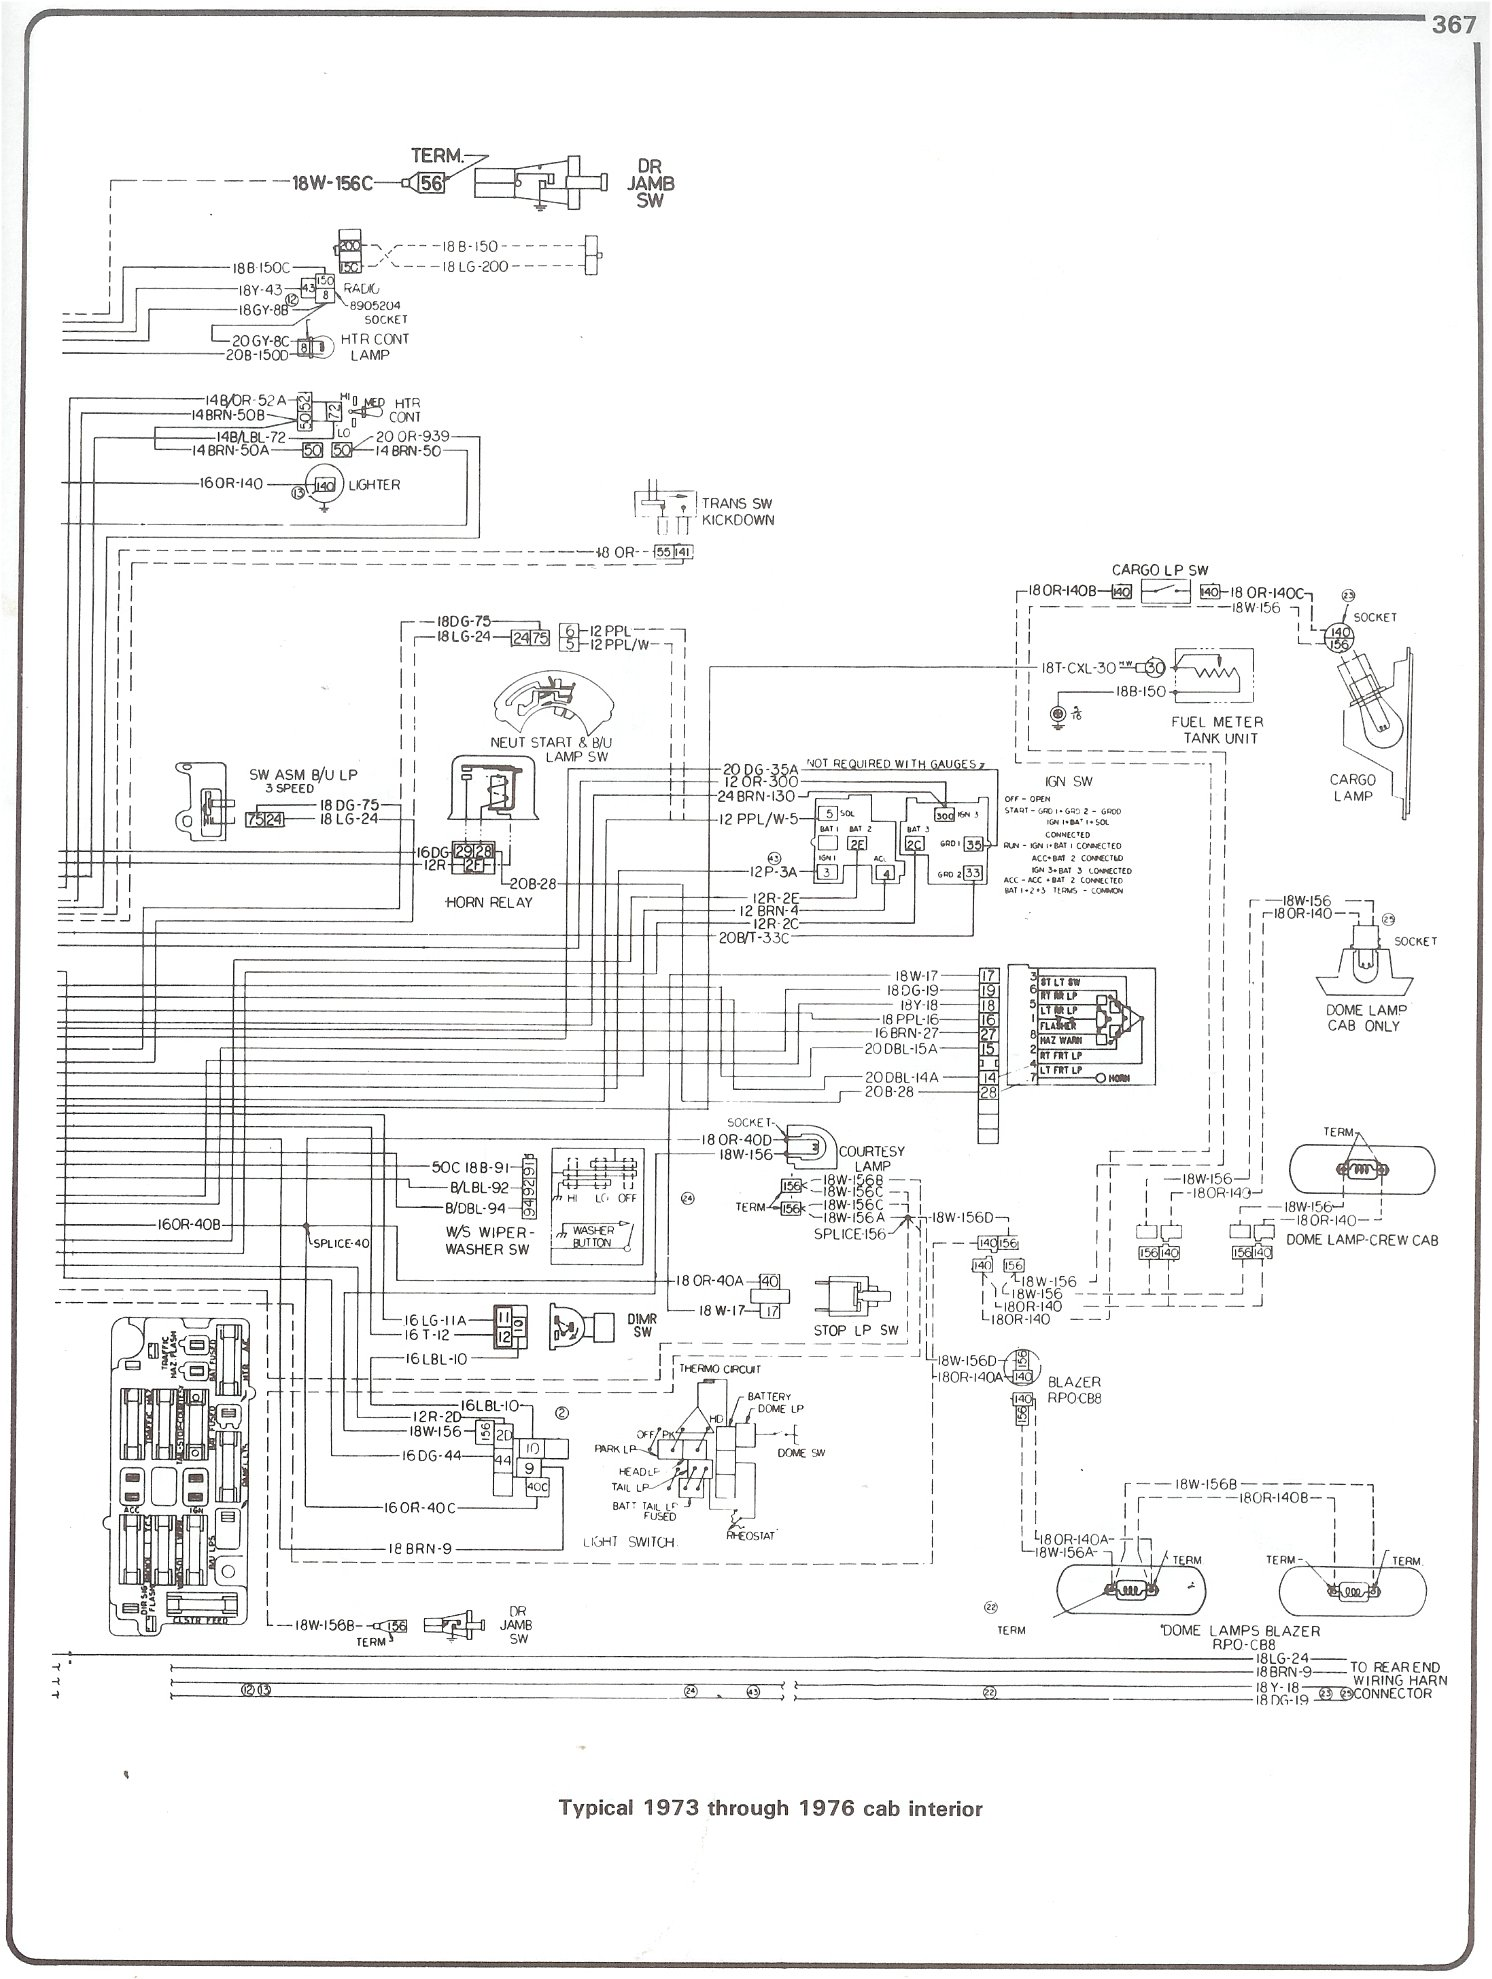 Firewall Wiring Diagram Libraries 1985 Chevy Truck Heater 1973 C10 Schematic Diagramscomplete 73 87 Diagrams Box